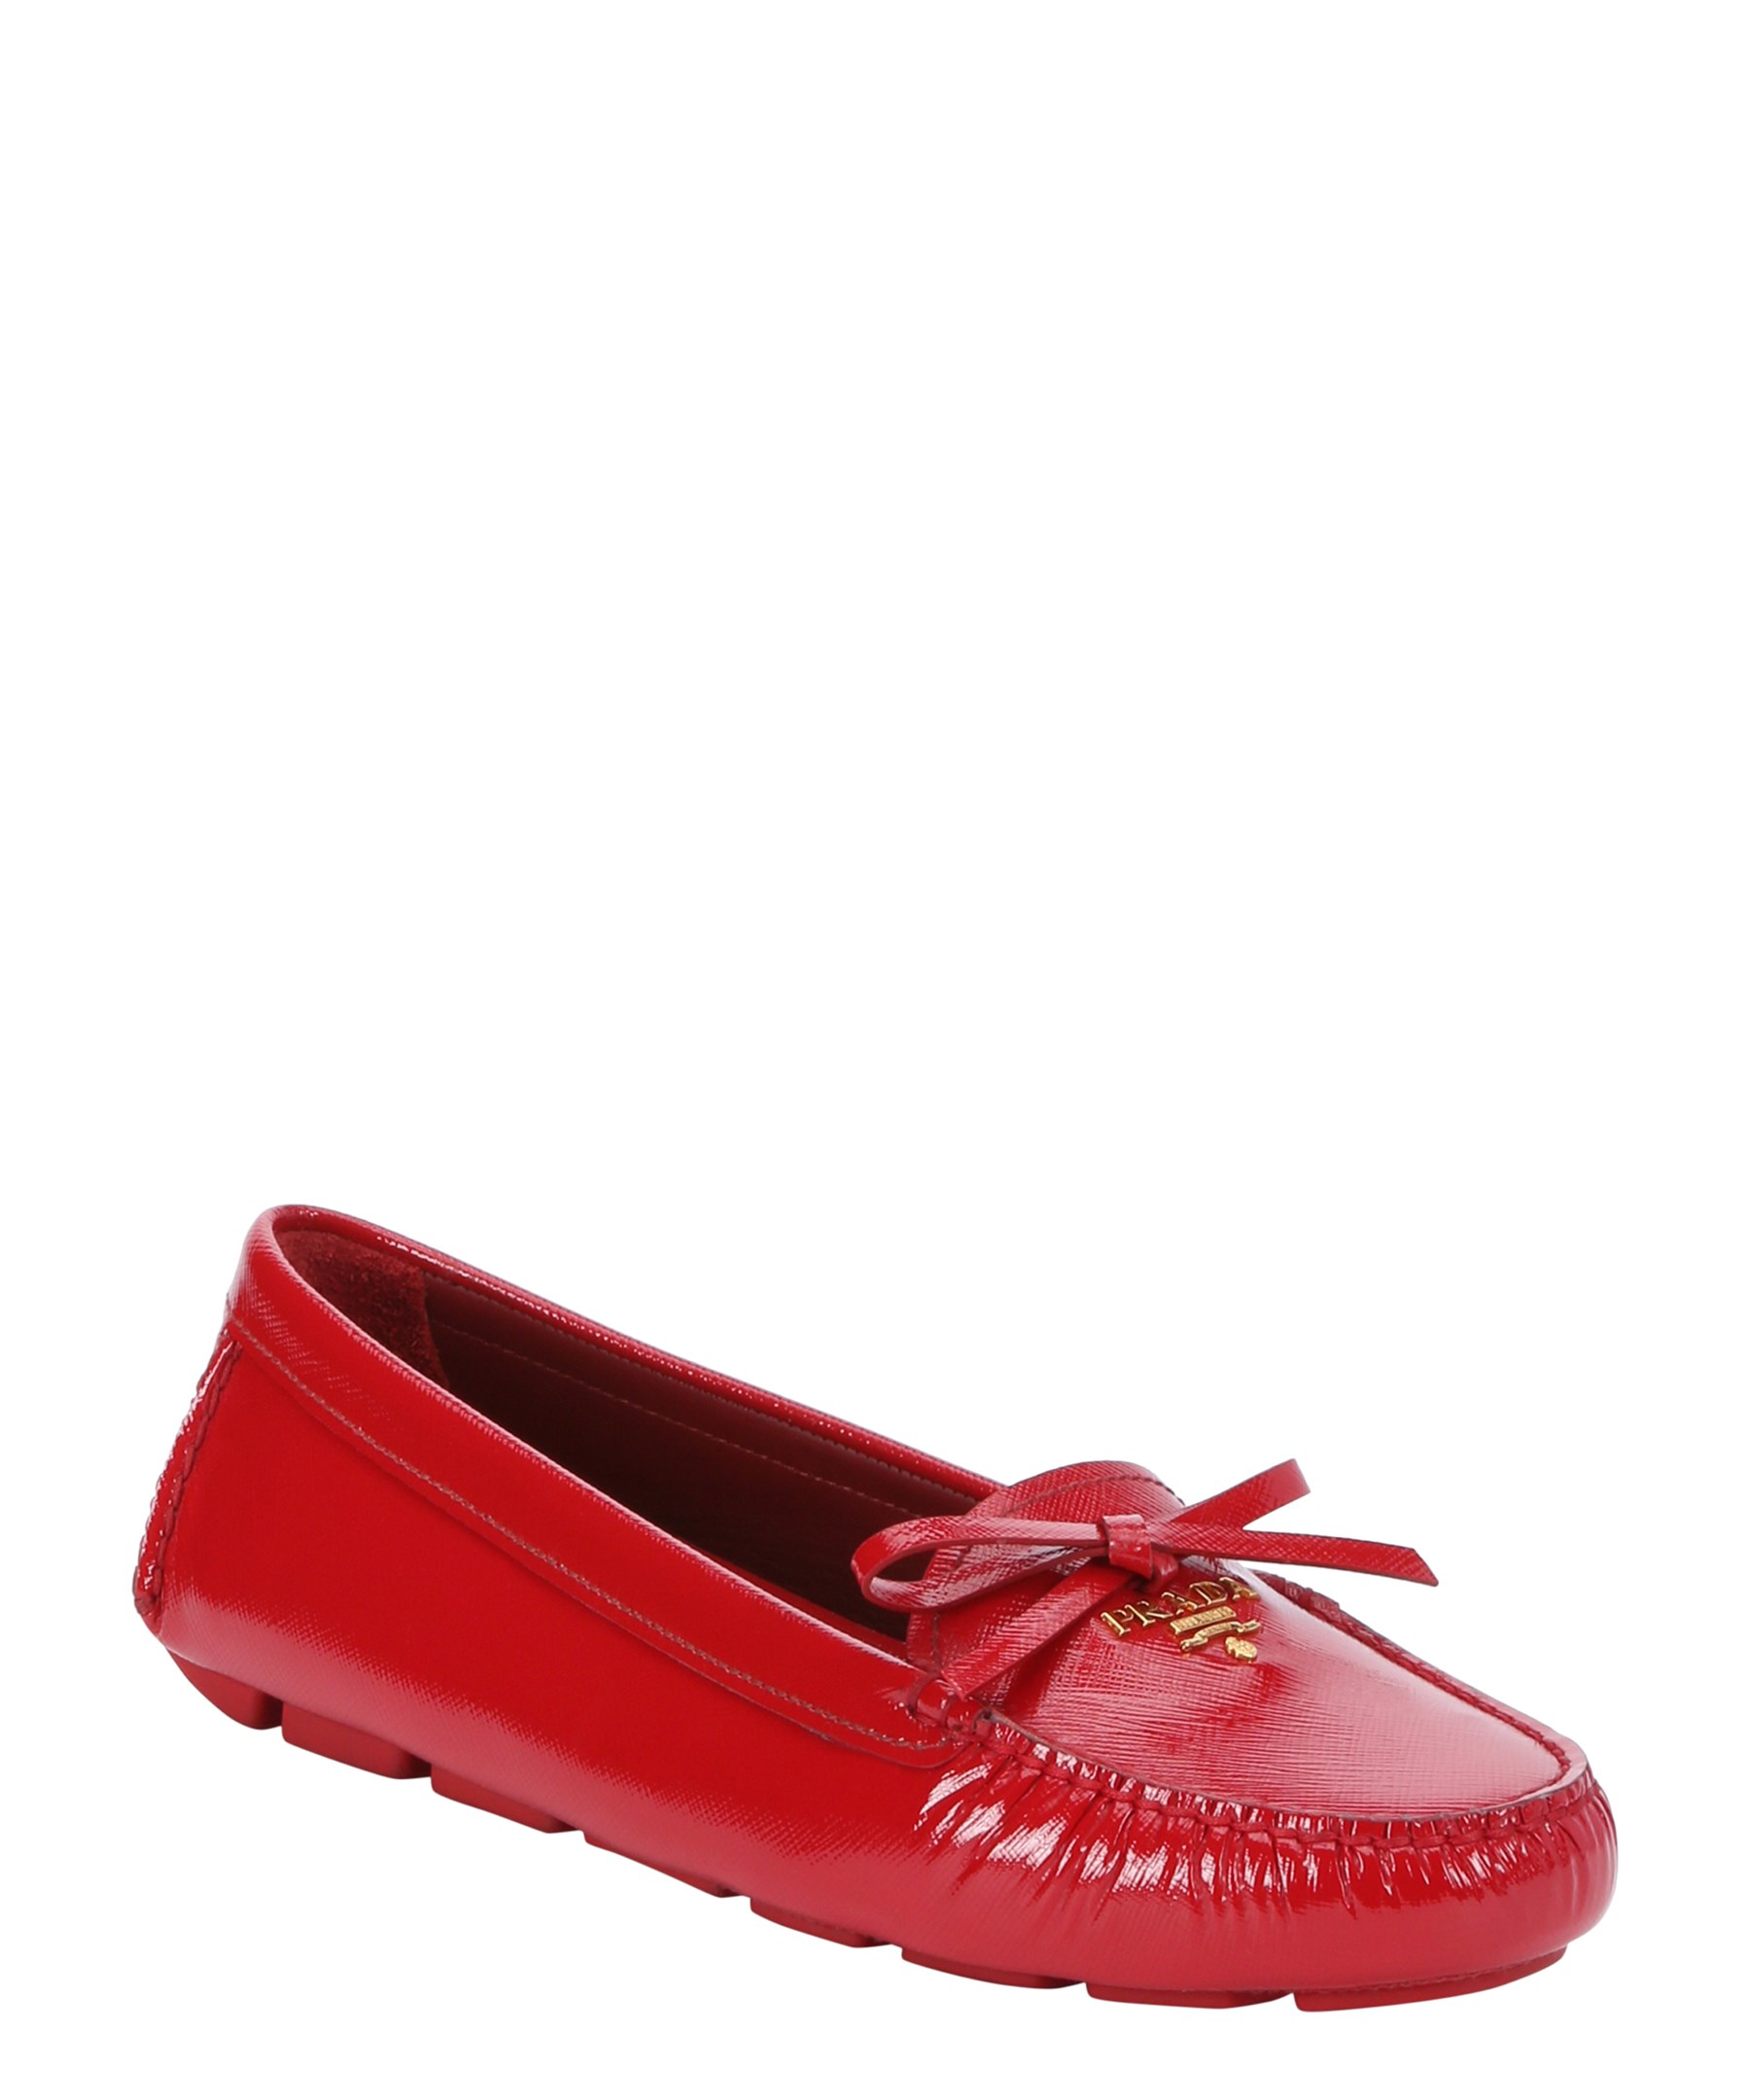 e08eec3e9ba Prada Red Patent Saffiano Leather Driving Loafers in Red